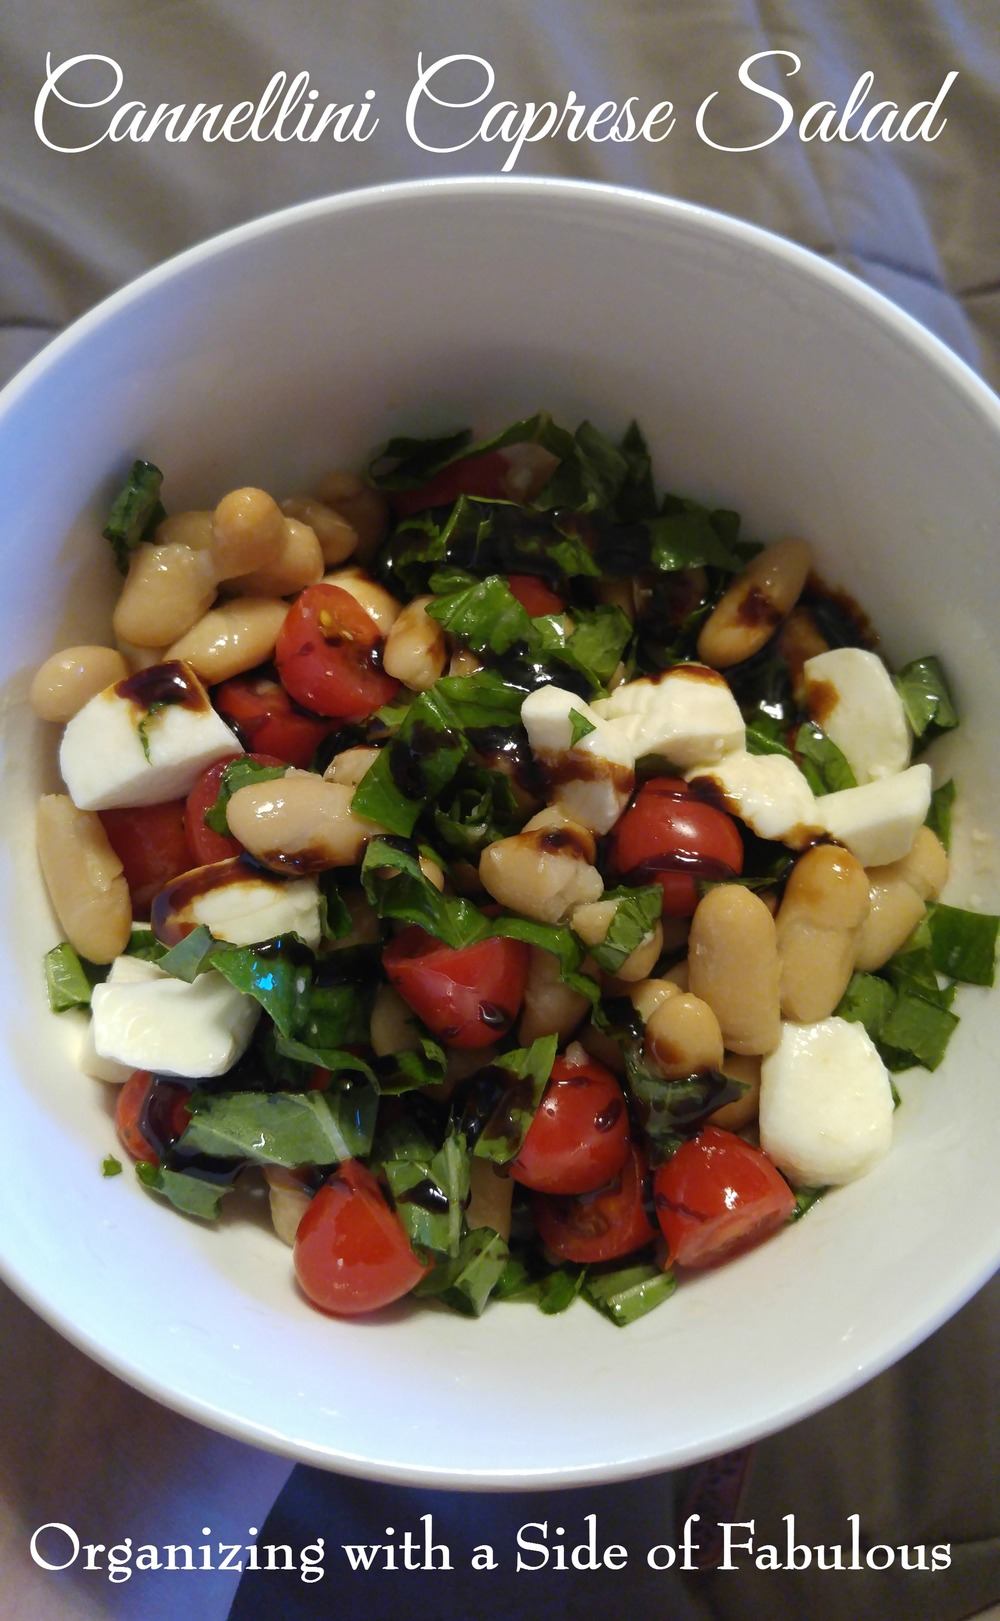 Cannellini Caprese Salad - Organizing with a Side of Fabulous